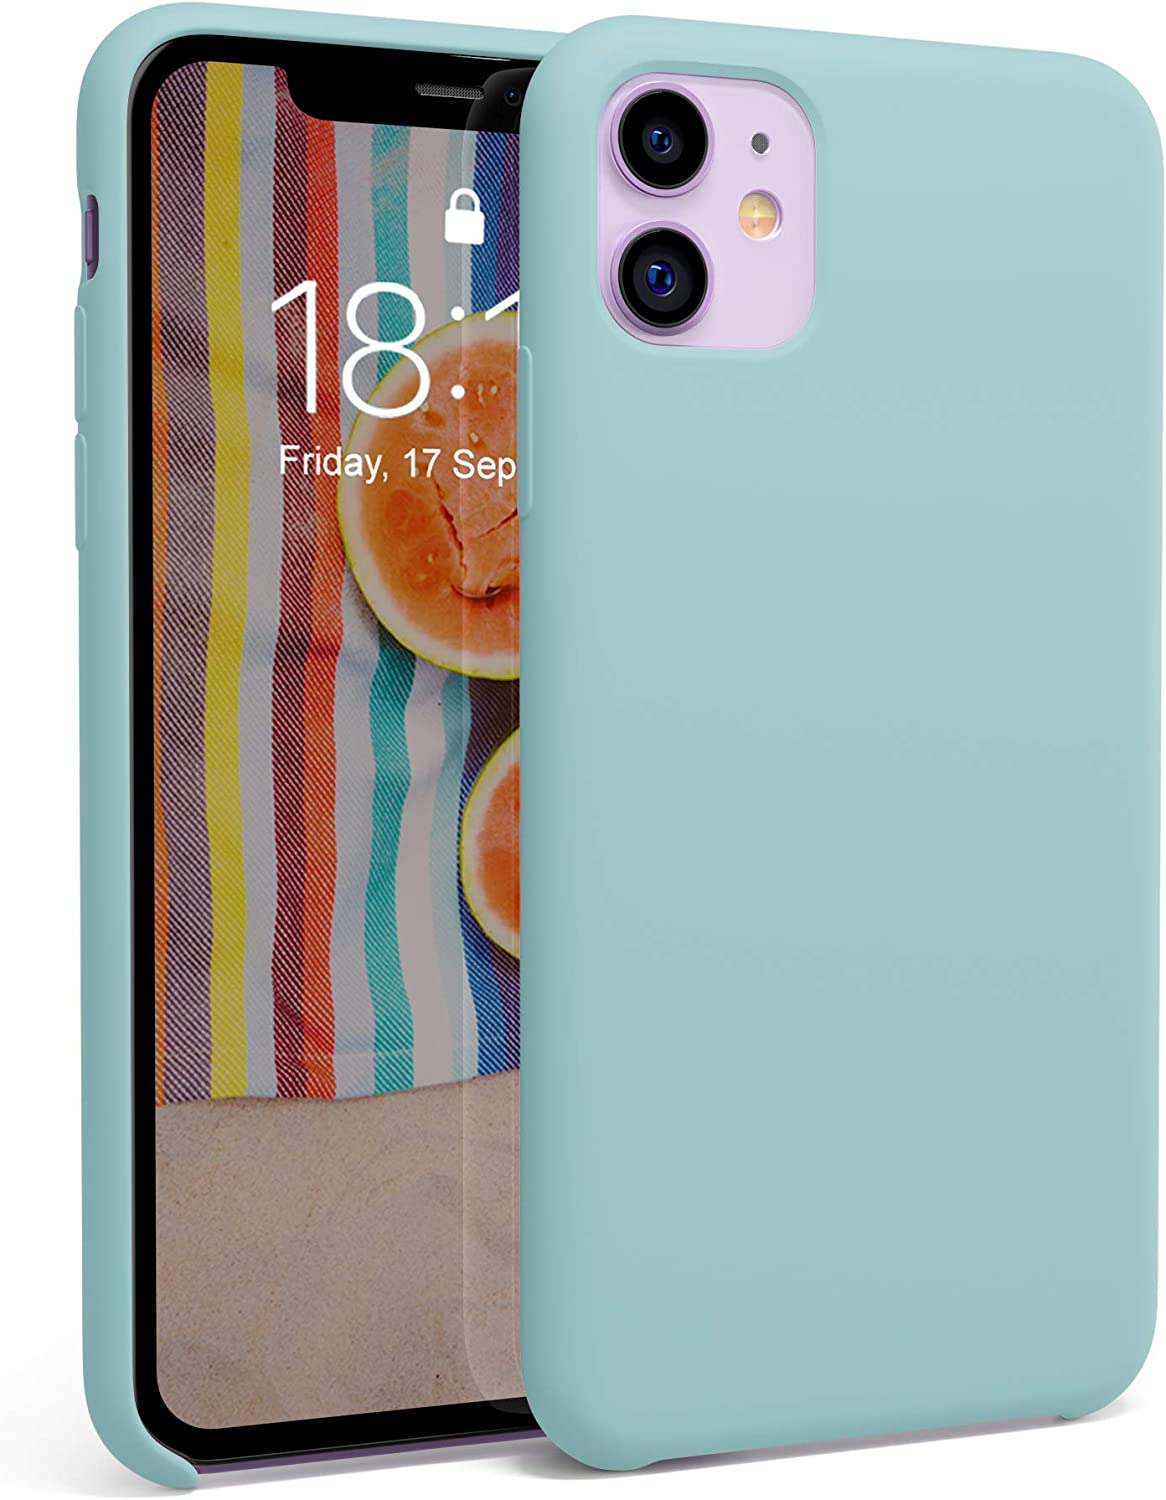 """honua. Silicone Case for iPhone 11, Soft and Protective iPhone 11 Case with Microfiber Lining, Compatible with Apple iPhone 11 6.1"""" (Blue Aquamarine)"""